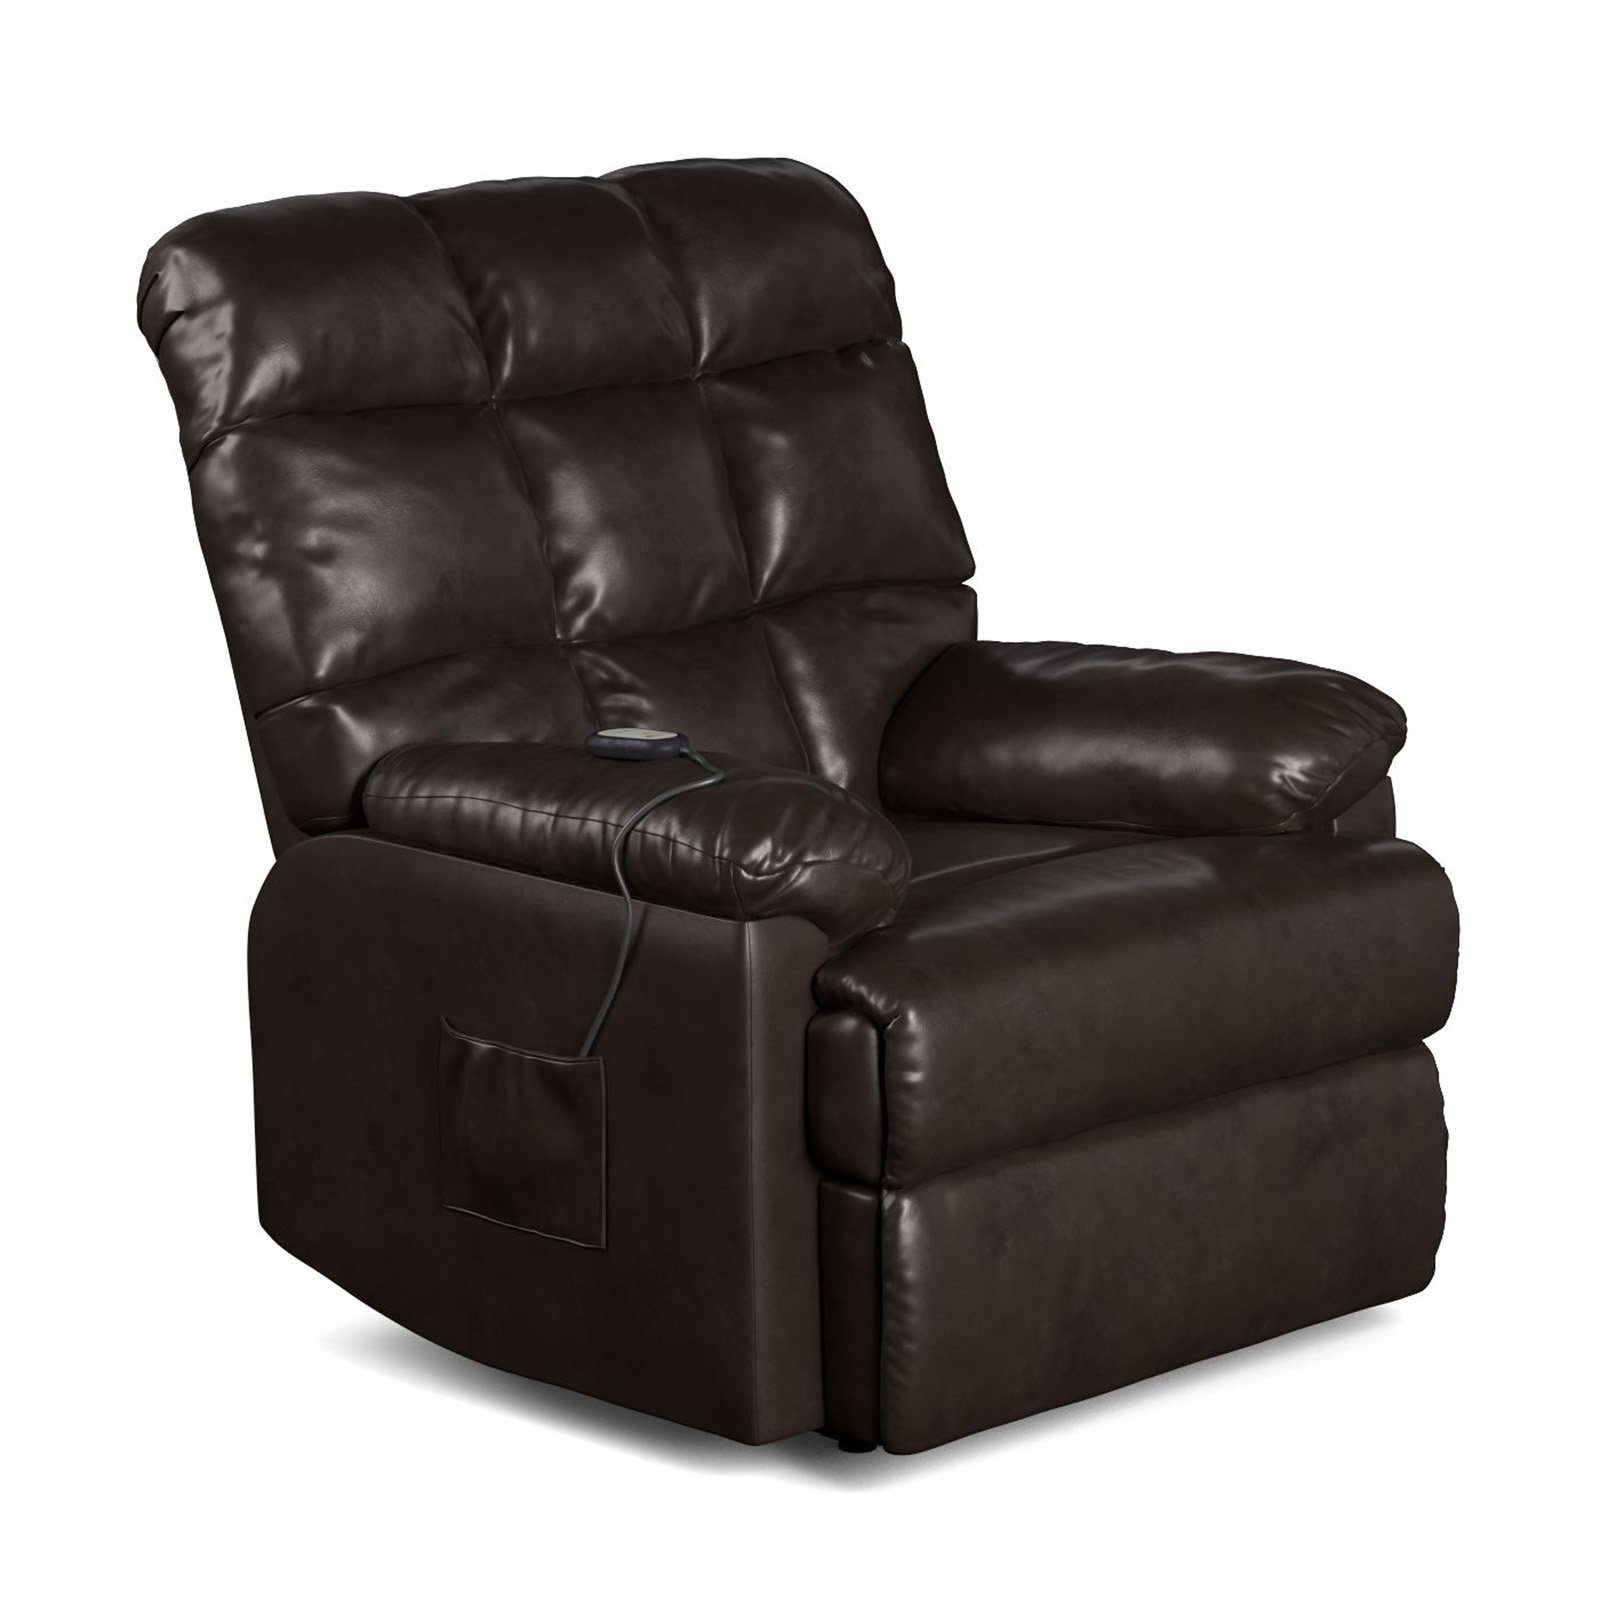 ProLounger Power Recliner and Lift Wall Hugger Chair in Renu Leather